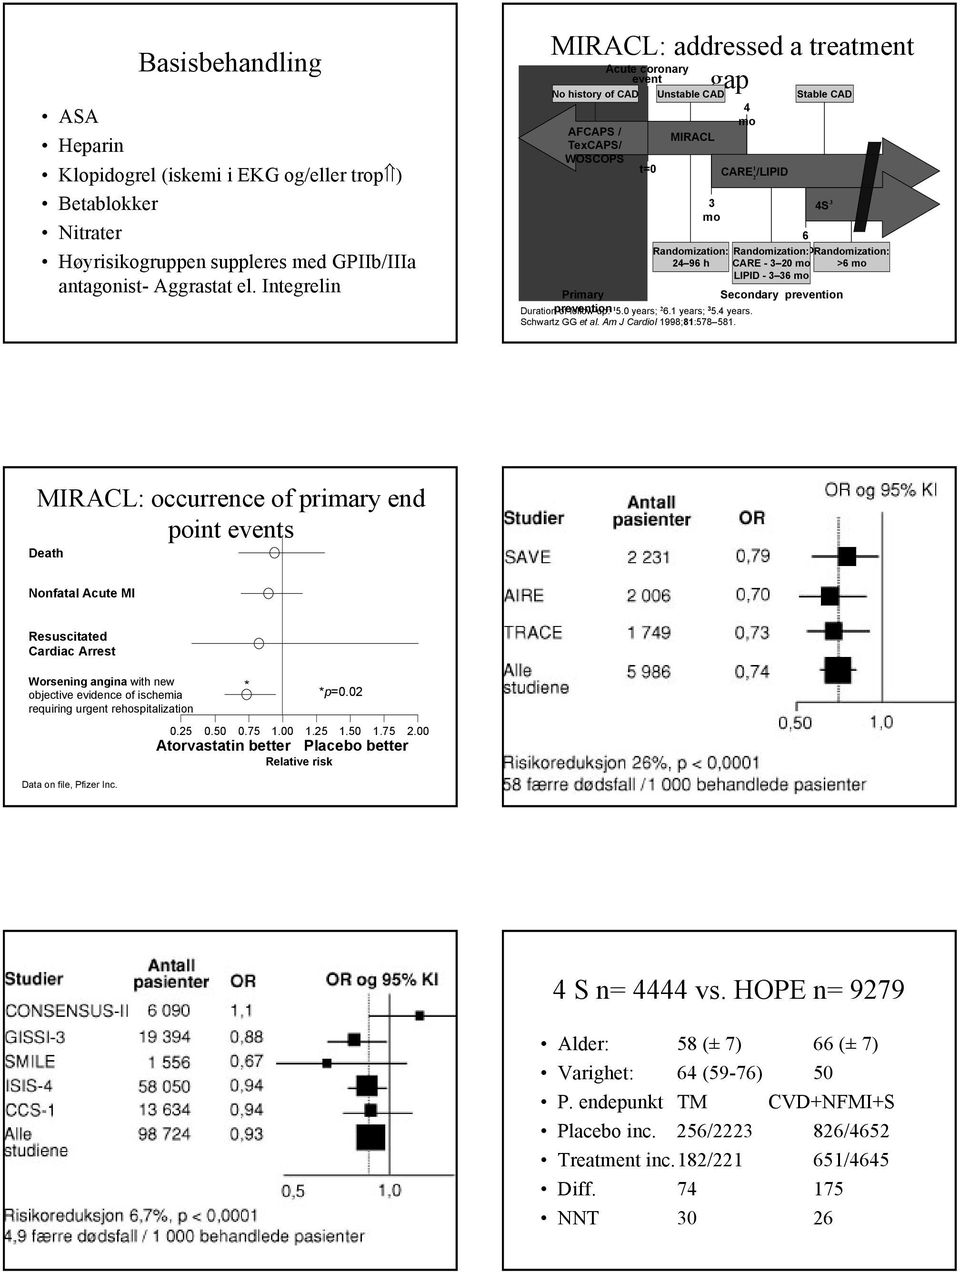 6 Randomization: morandomization: CARE - 3 20 mo >6 mo LIPID - 3 36 mo Primary Secondary prevention Duration prevention of follow-up: 1 5.0 years; 2 6.1 years; 3 5.4 years. Schwartz GG et al.